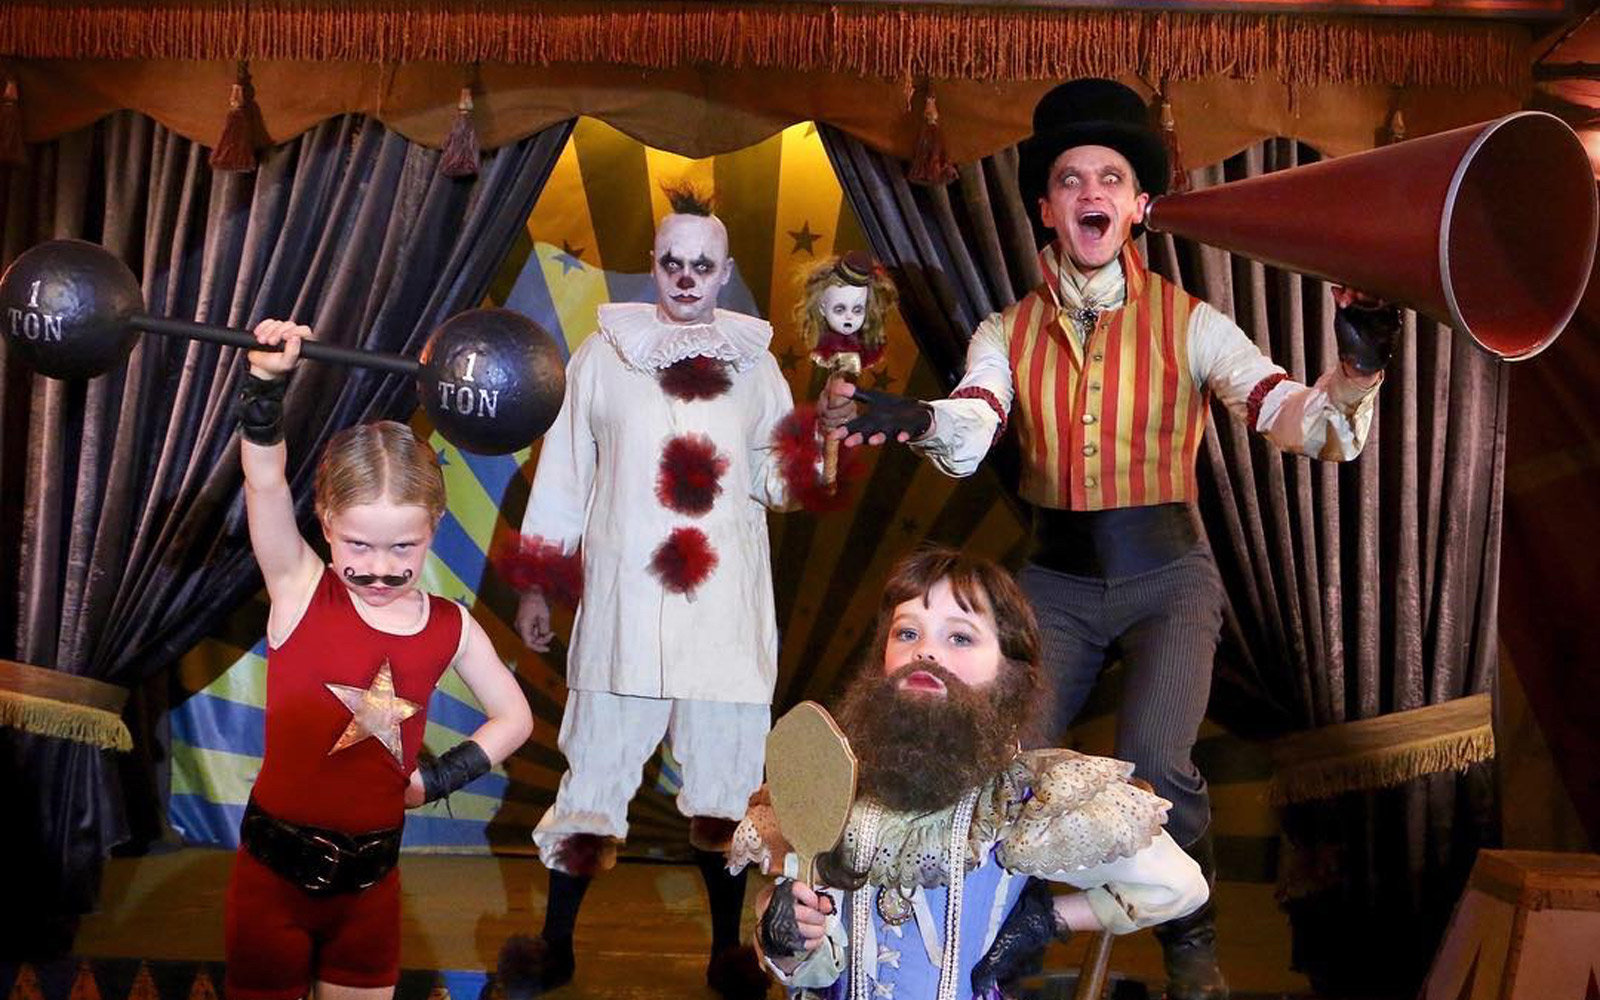 Neil Patrick Harris and his family dressed up for Halloween